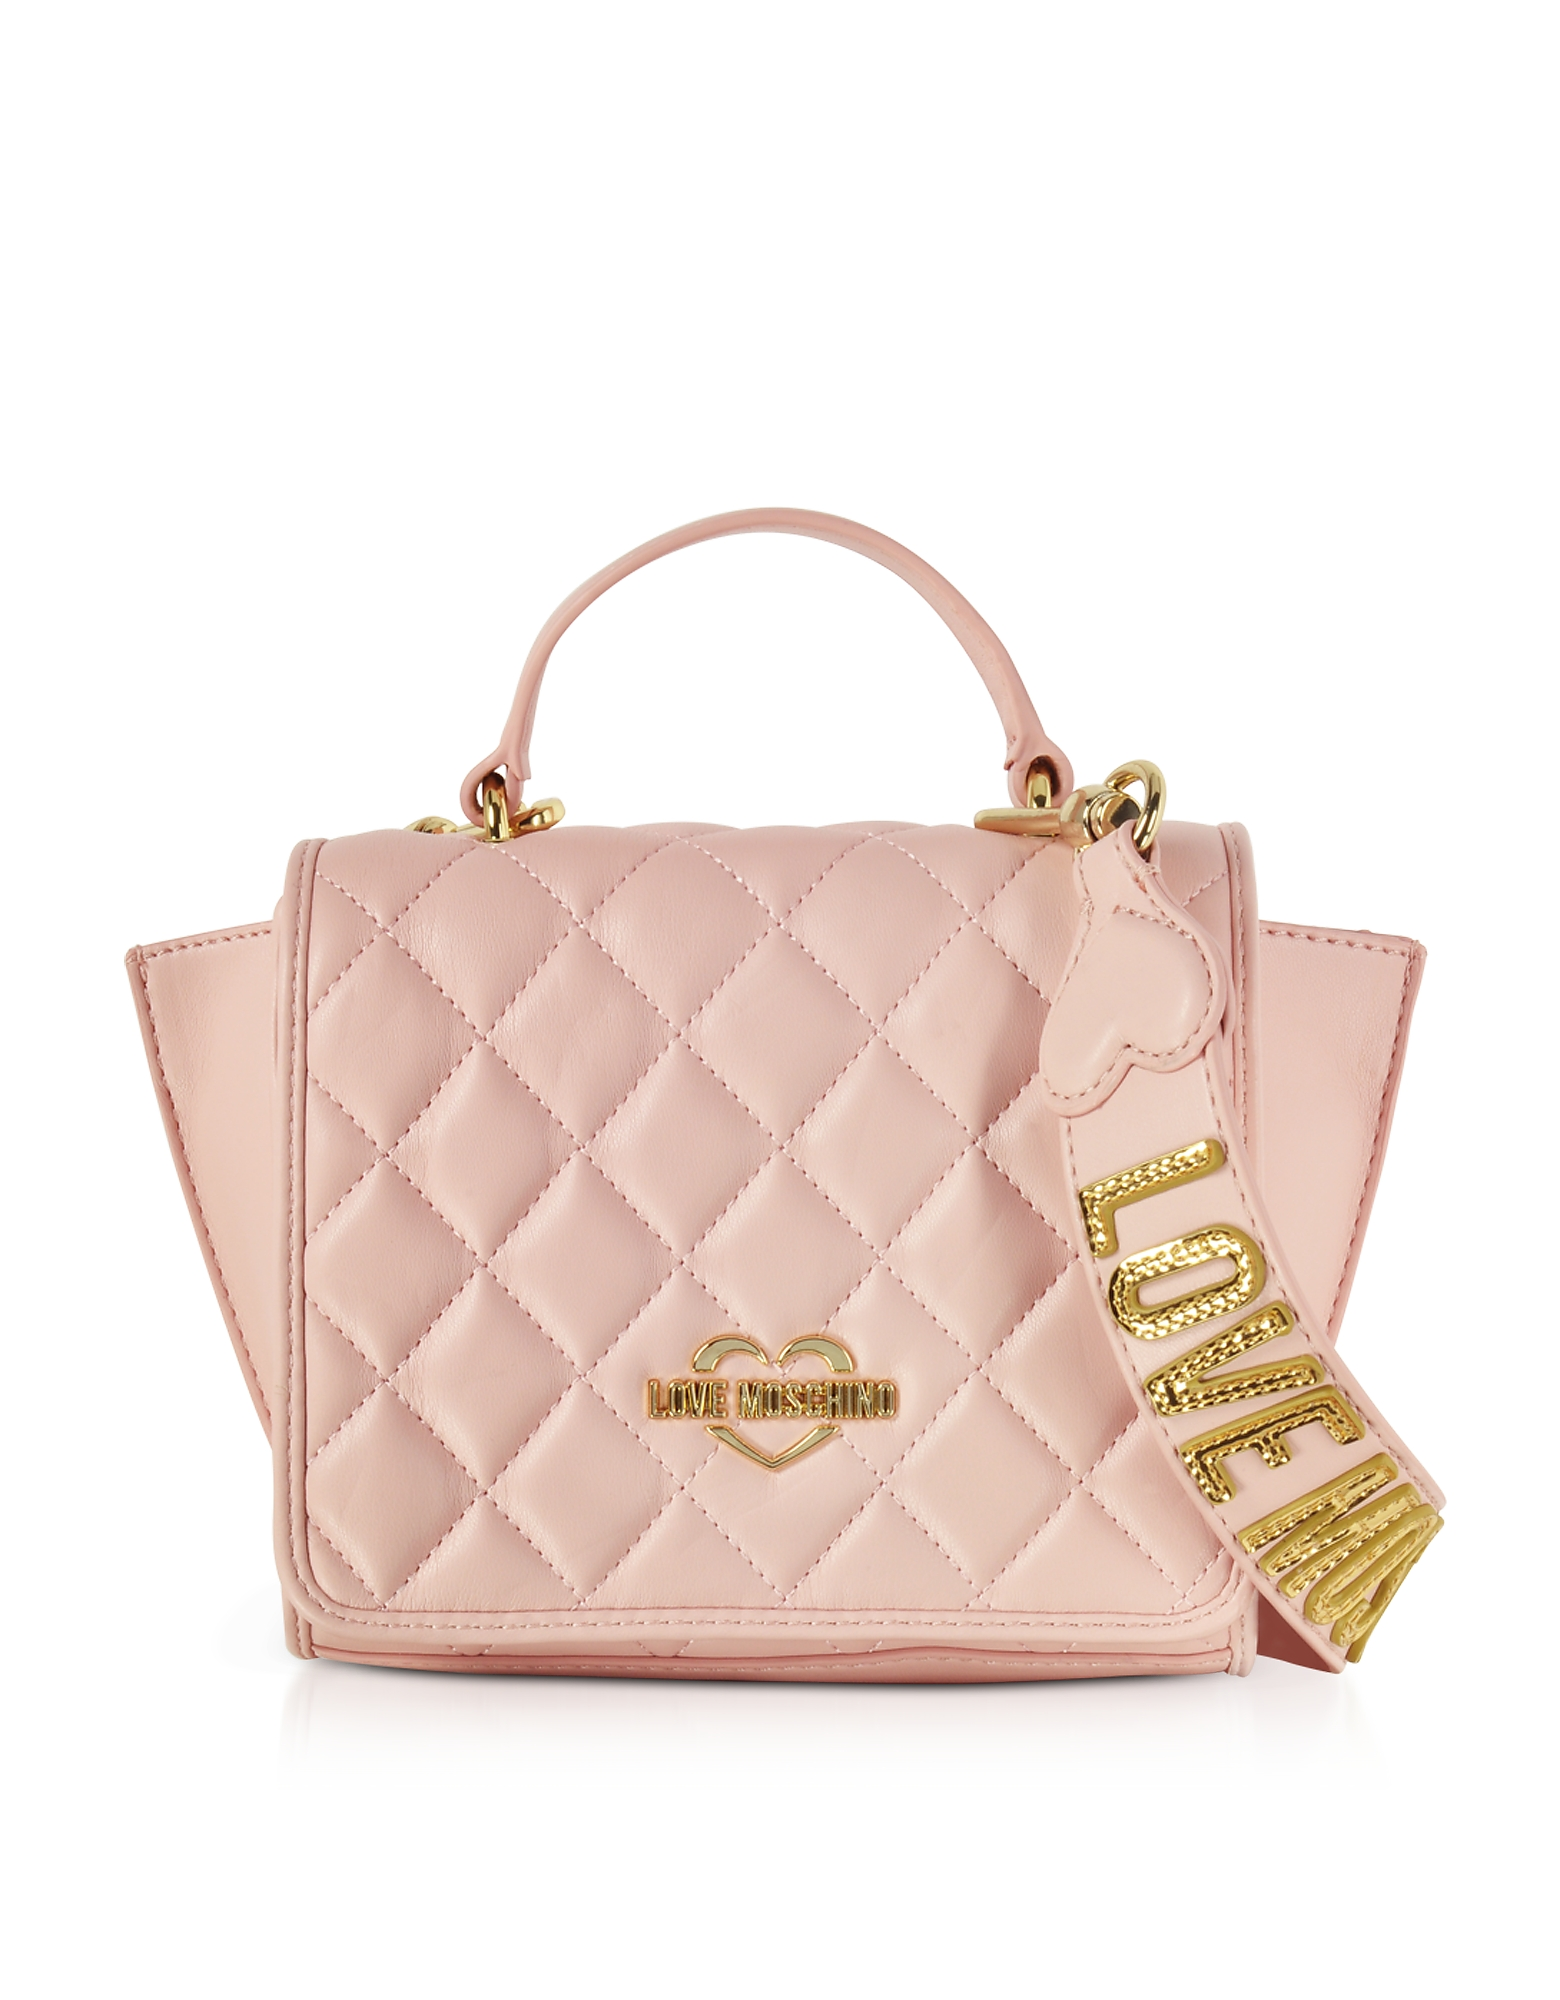 Love Moschino Handbags, Pink Superquilted Eco-Leather Small Shoulder Bag